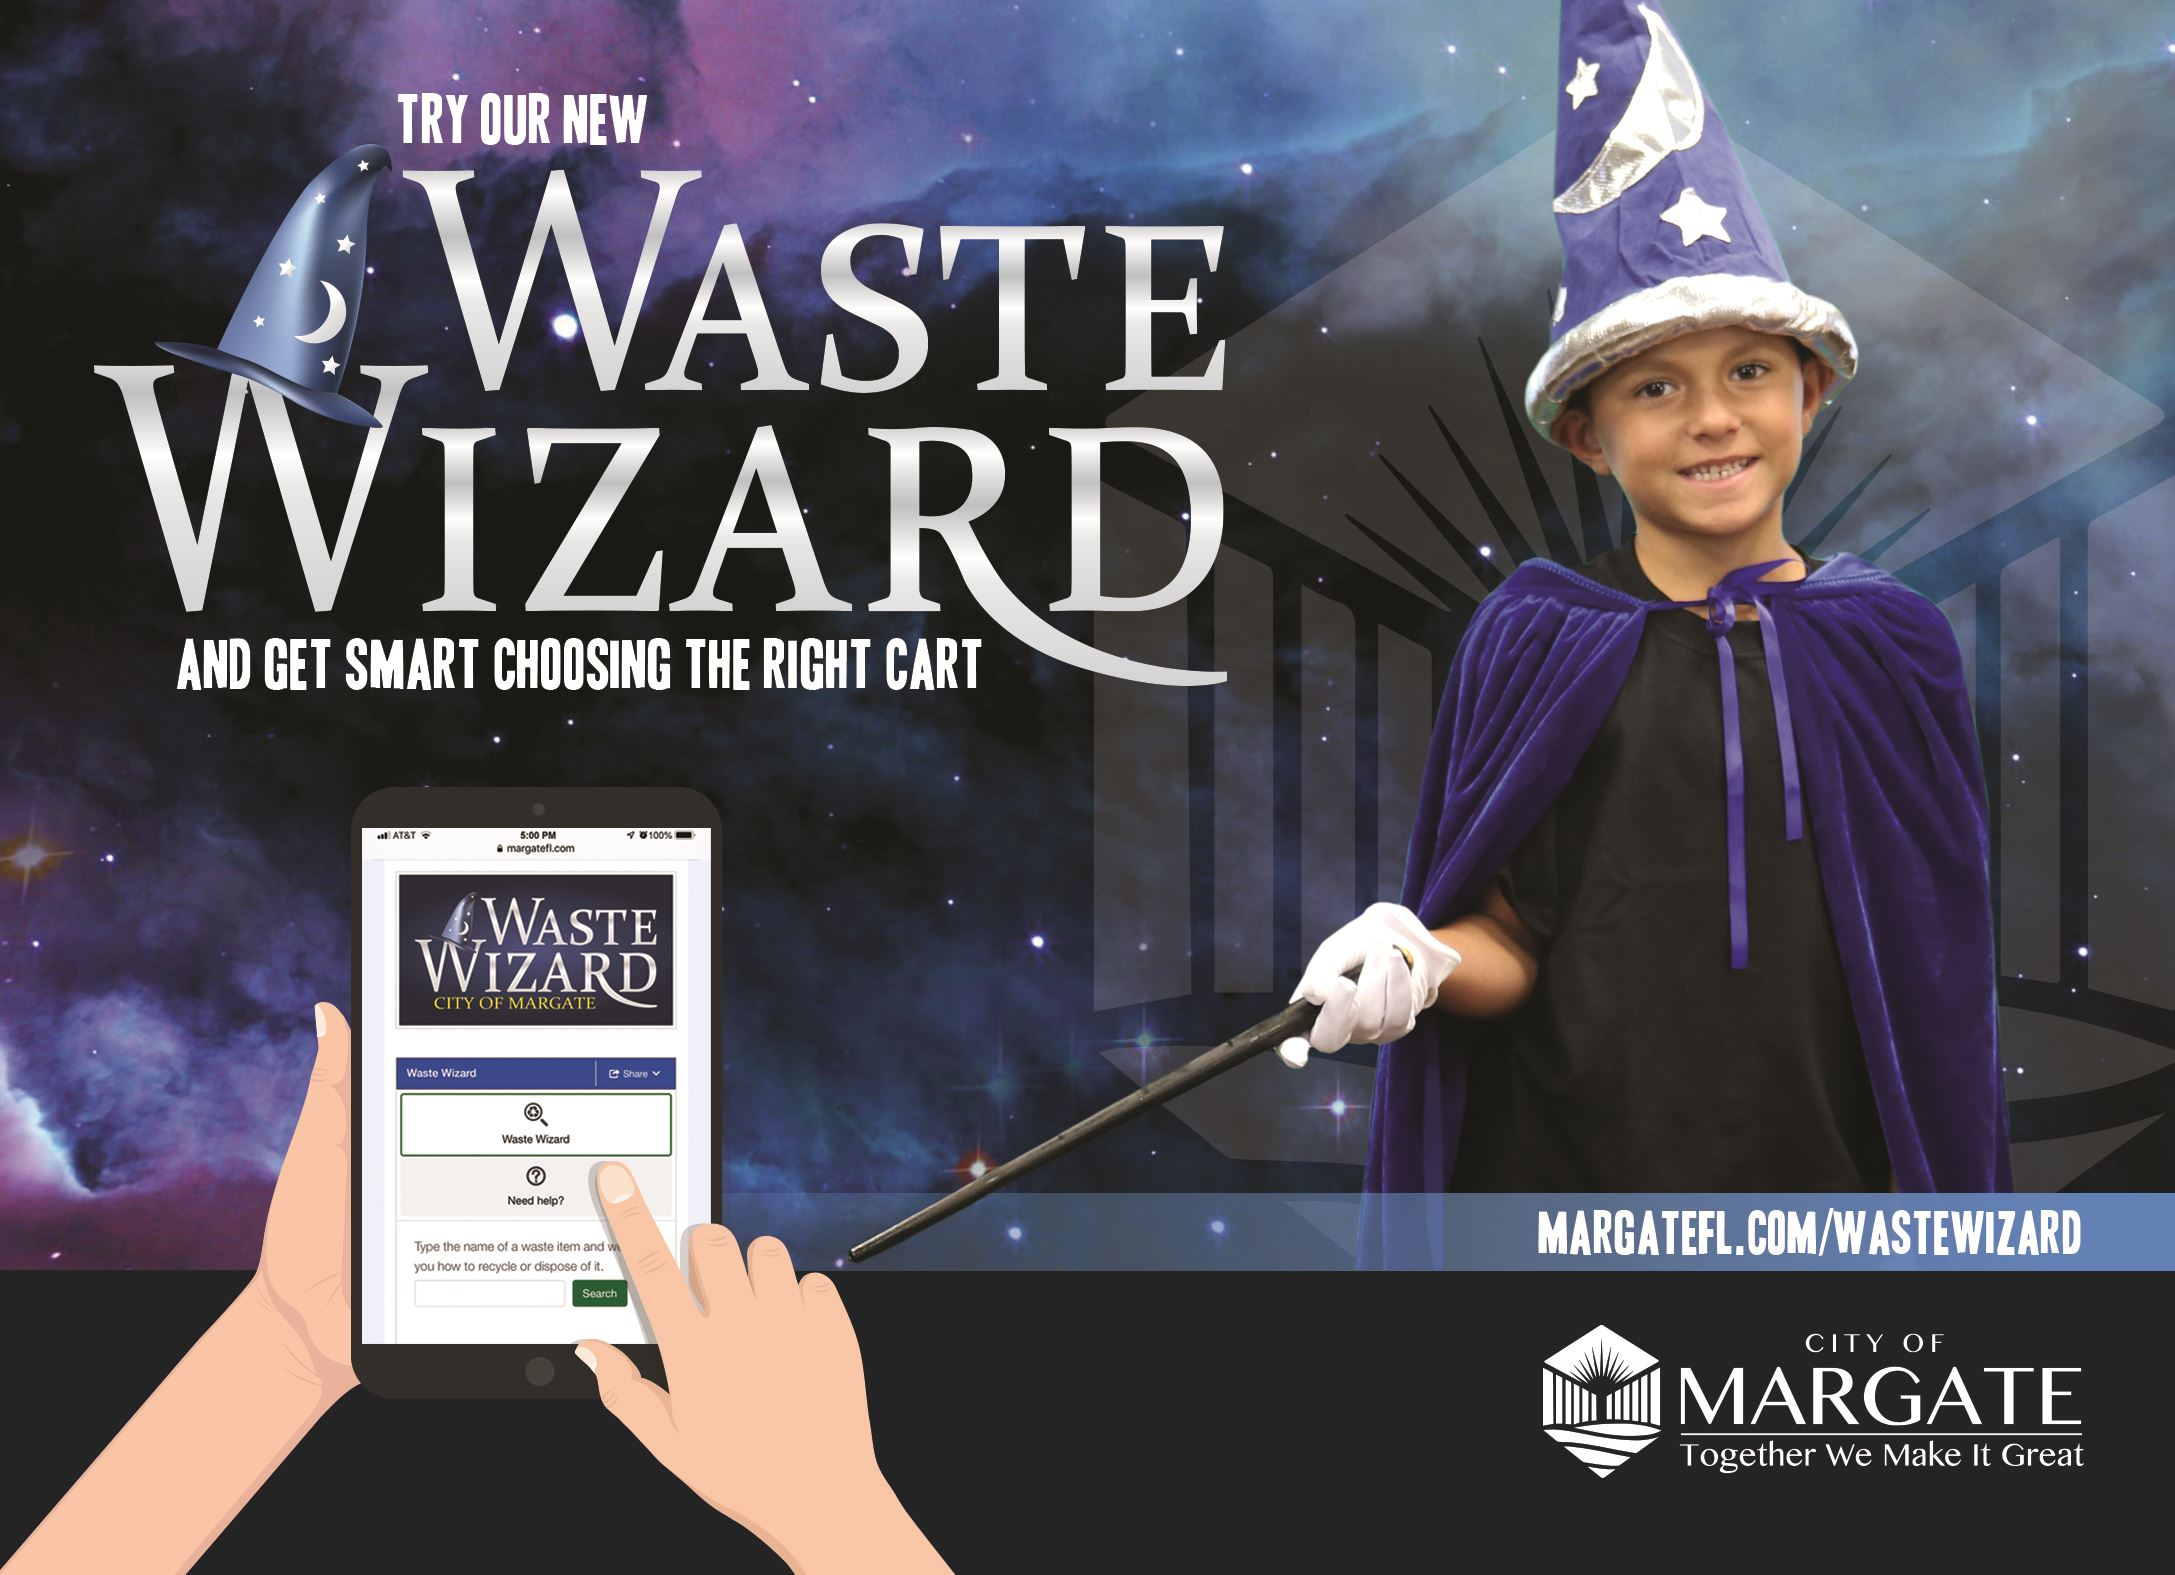 Try our new Waste Wizard